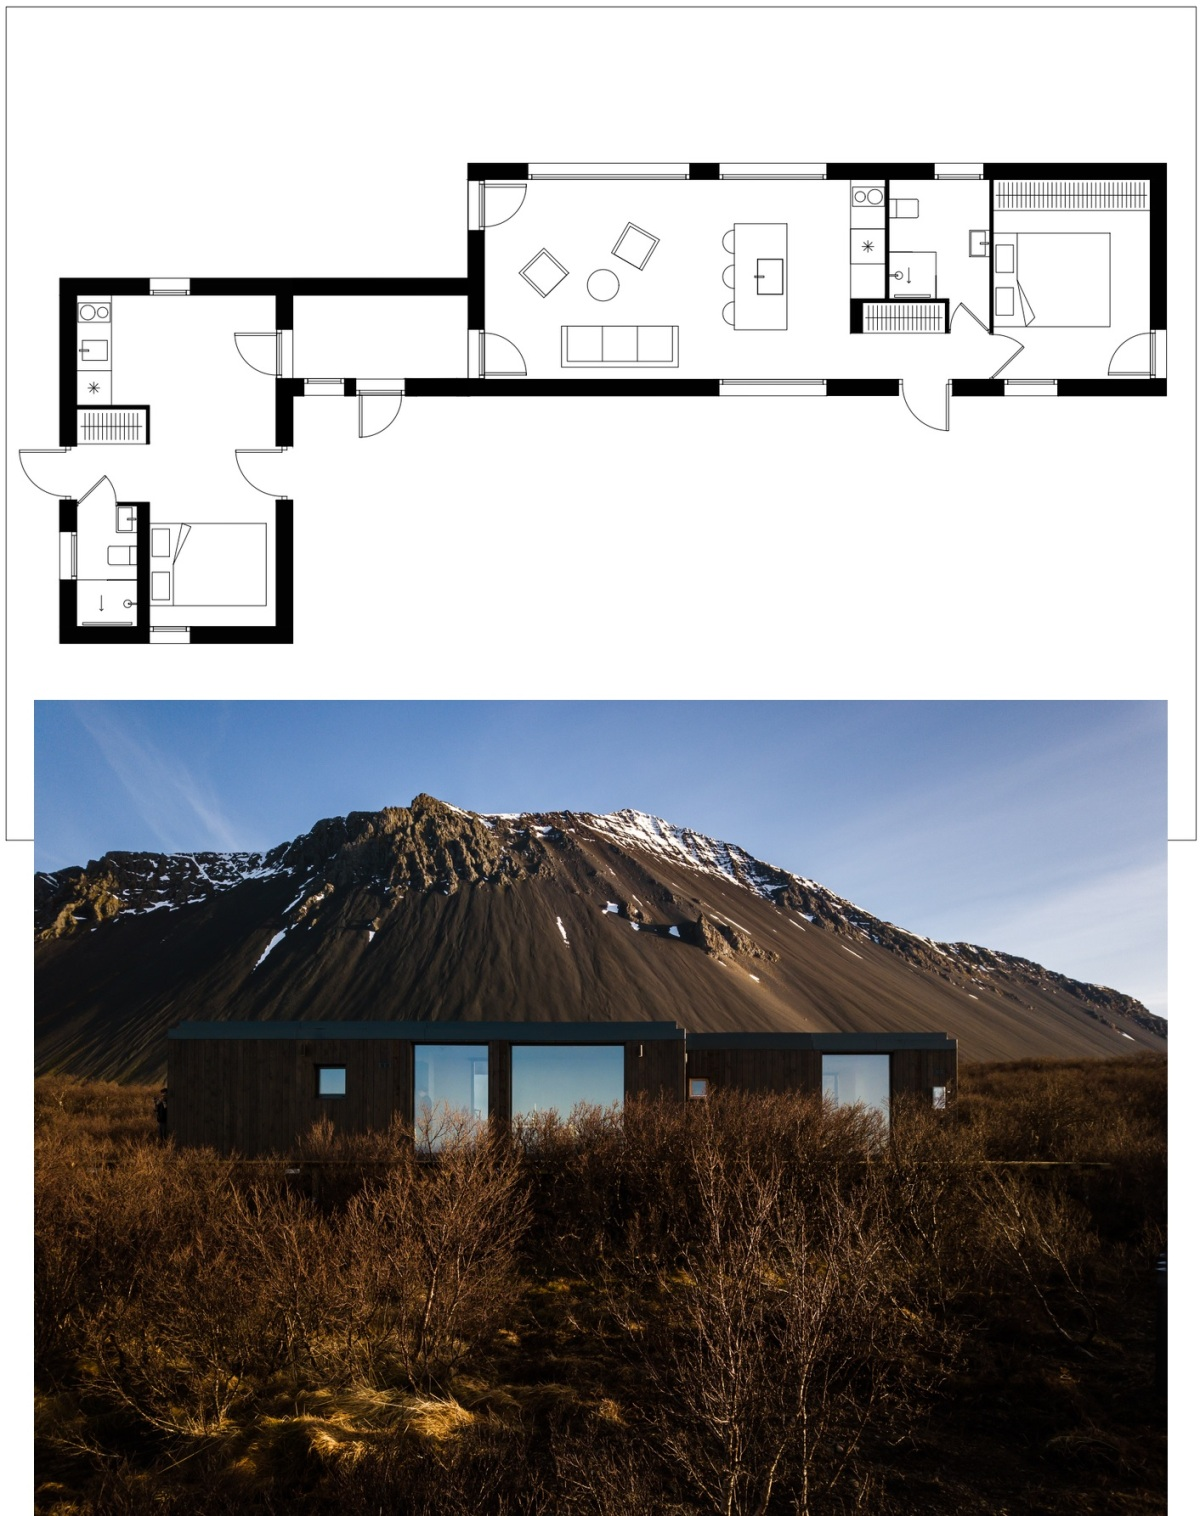 The low-profile frame, small size and flat roof were chosen in response to the landscape and climate of this region